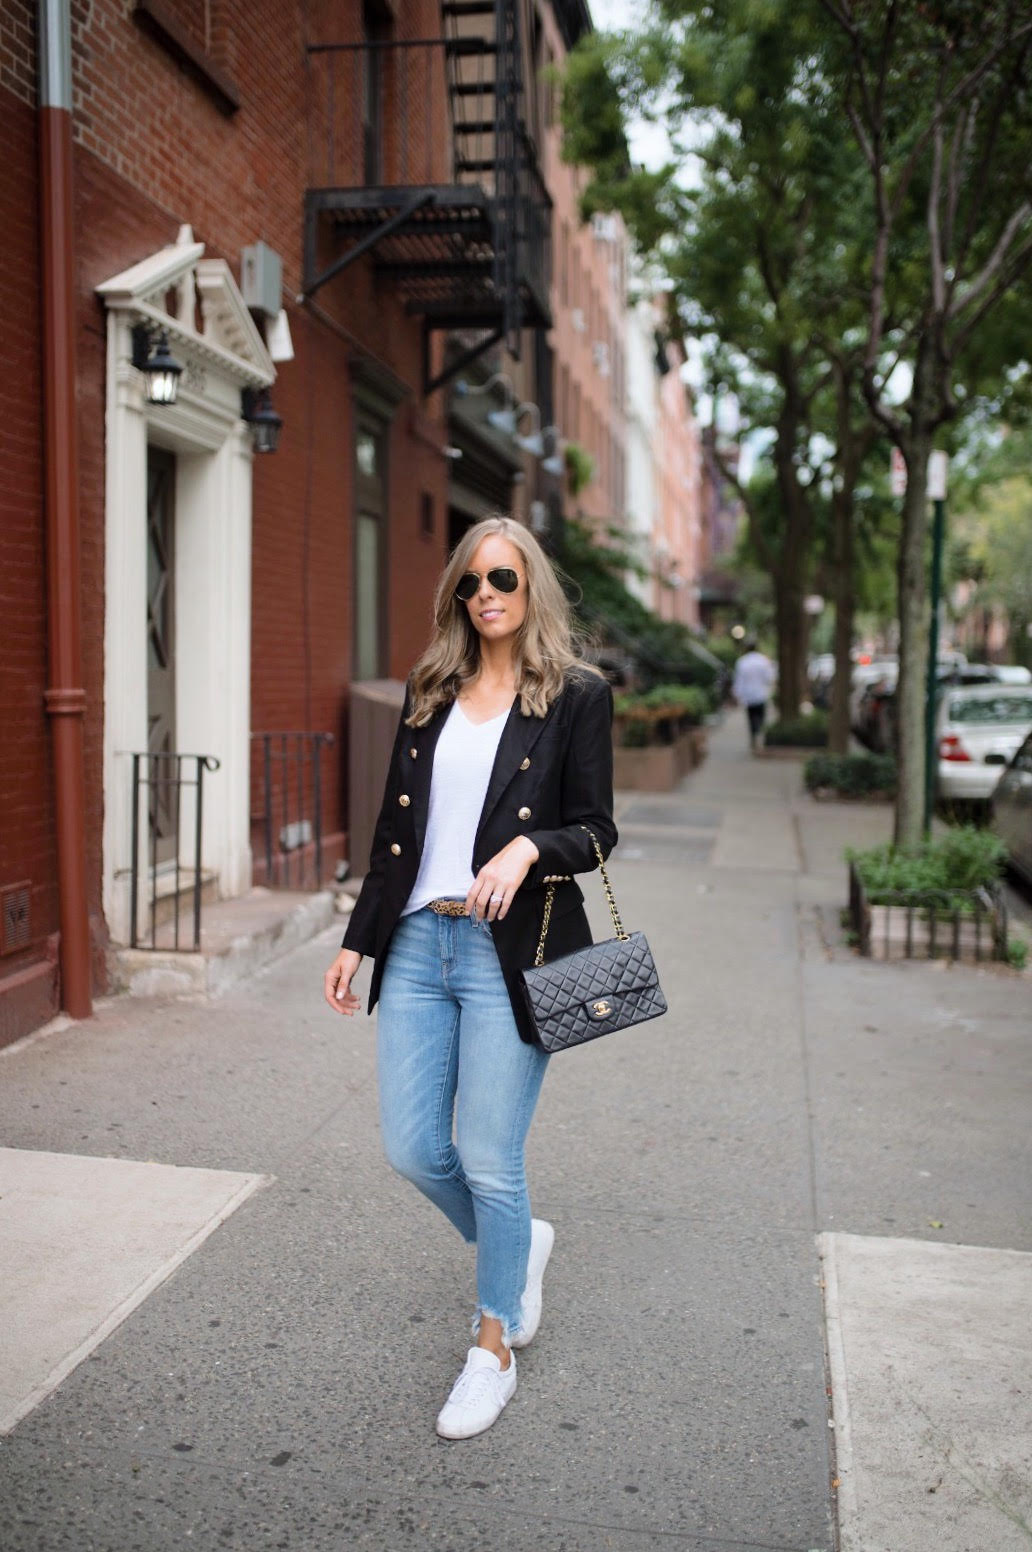 casual outfit ideas blue distressed jeans white sneakers balmain blazer chanel bag fashion blogger new york street style outfit lauren slade style elixir blog